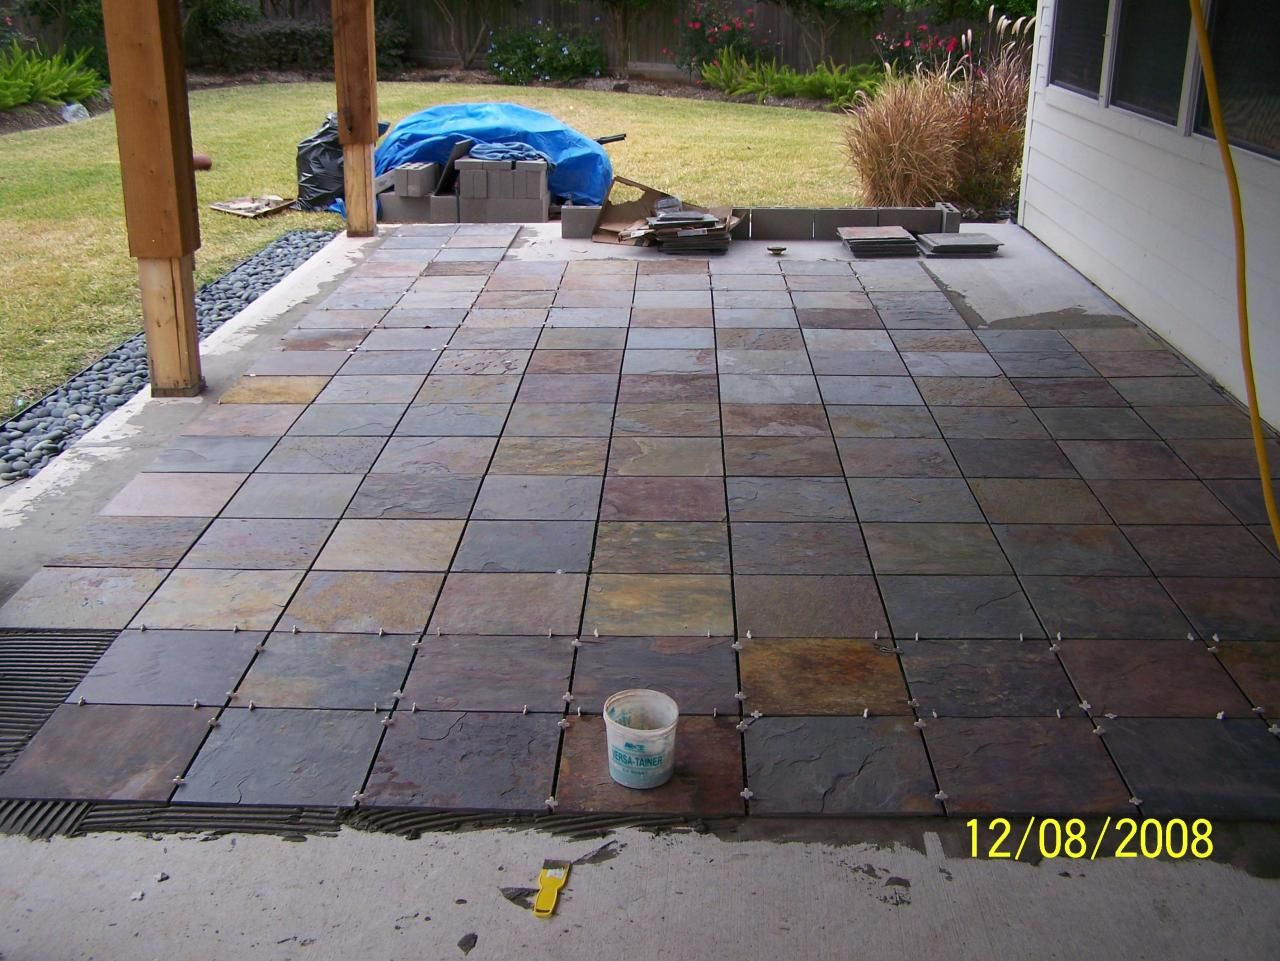 Superieur Outdoor Patio Flooring Options | ... Trim Paint And New Flooring Patio Tile  Install Slate Patio In Progress